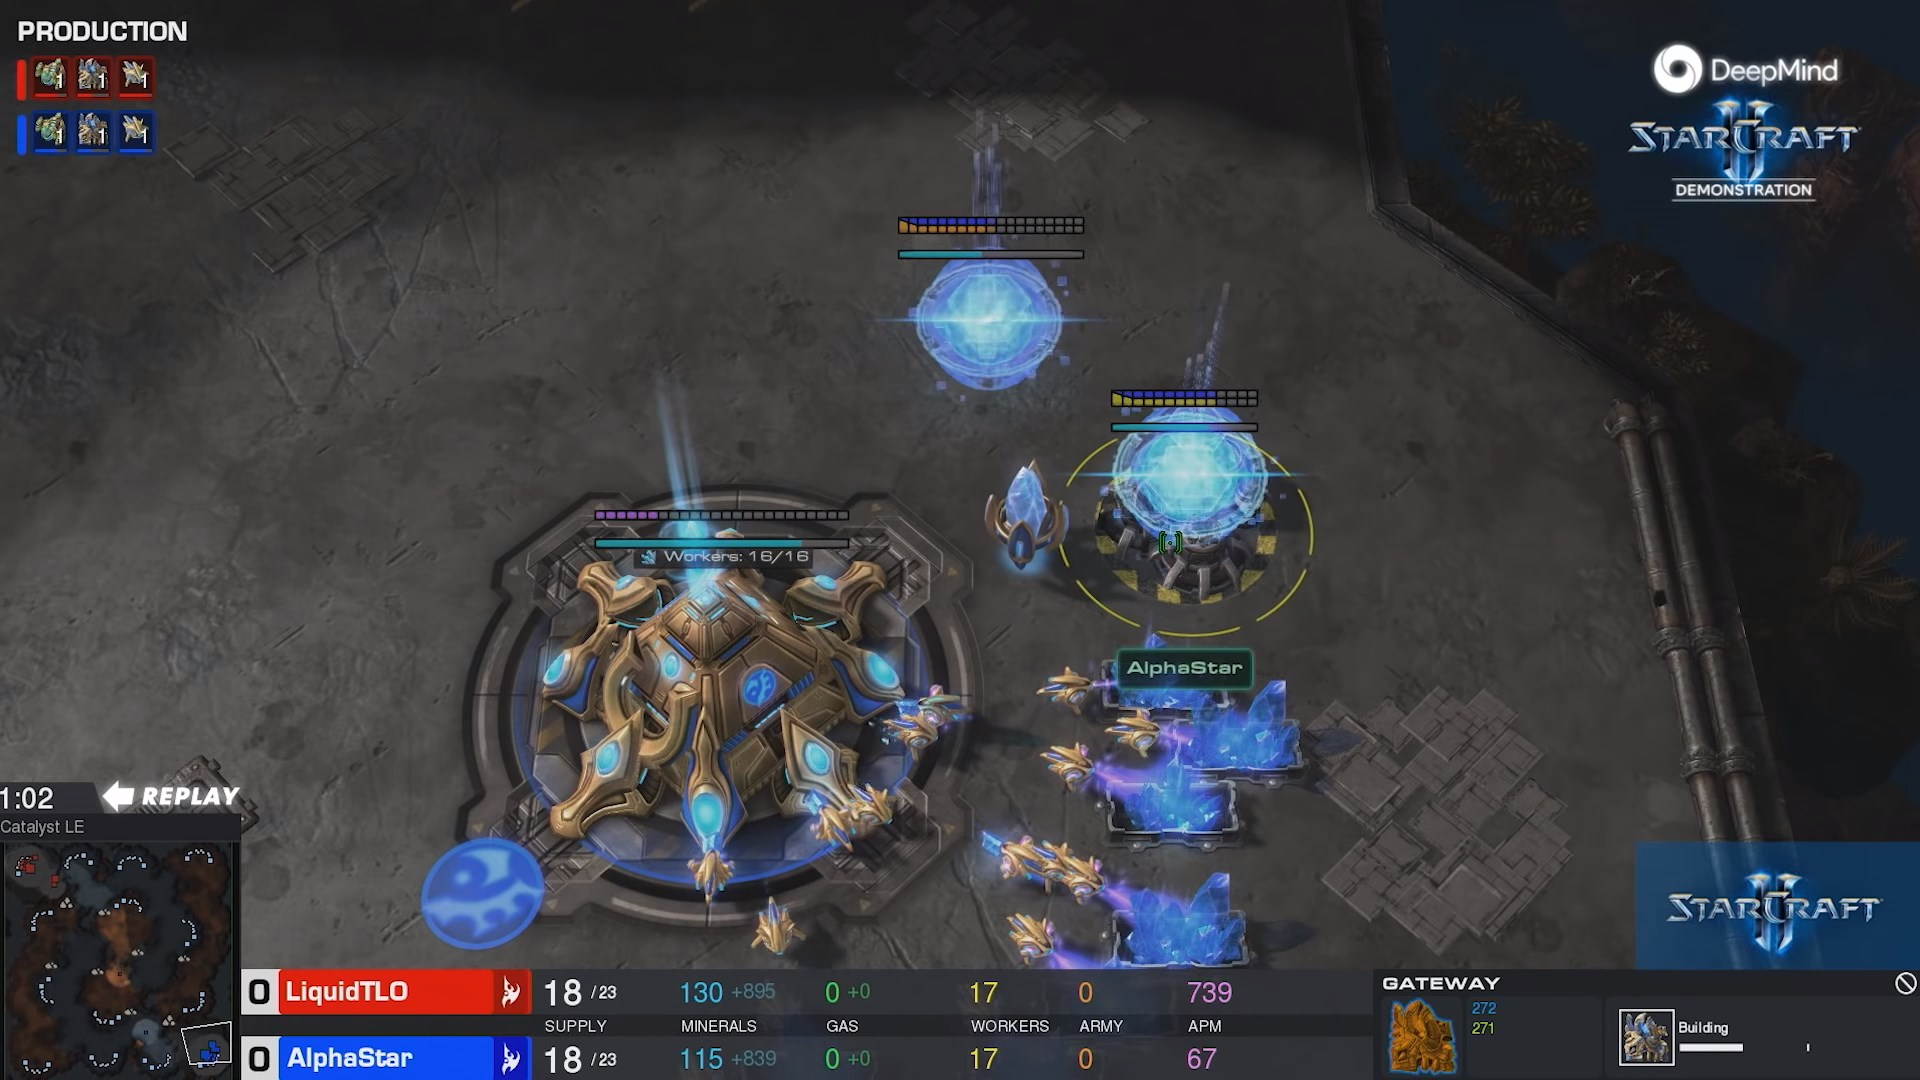 Play against DeepMind AI in StarCraft II for a limited time""